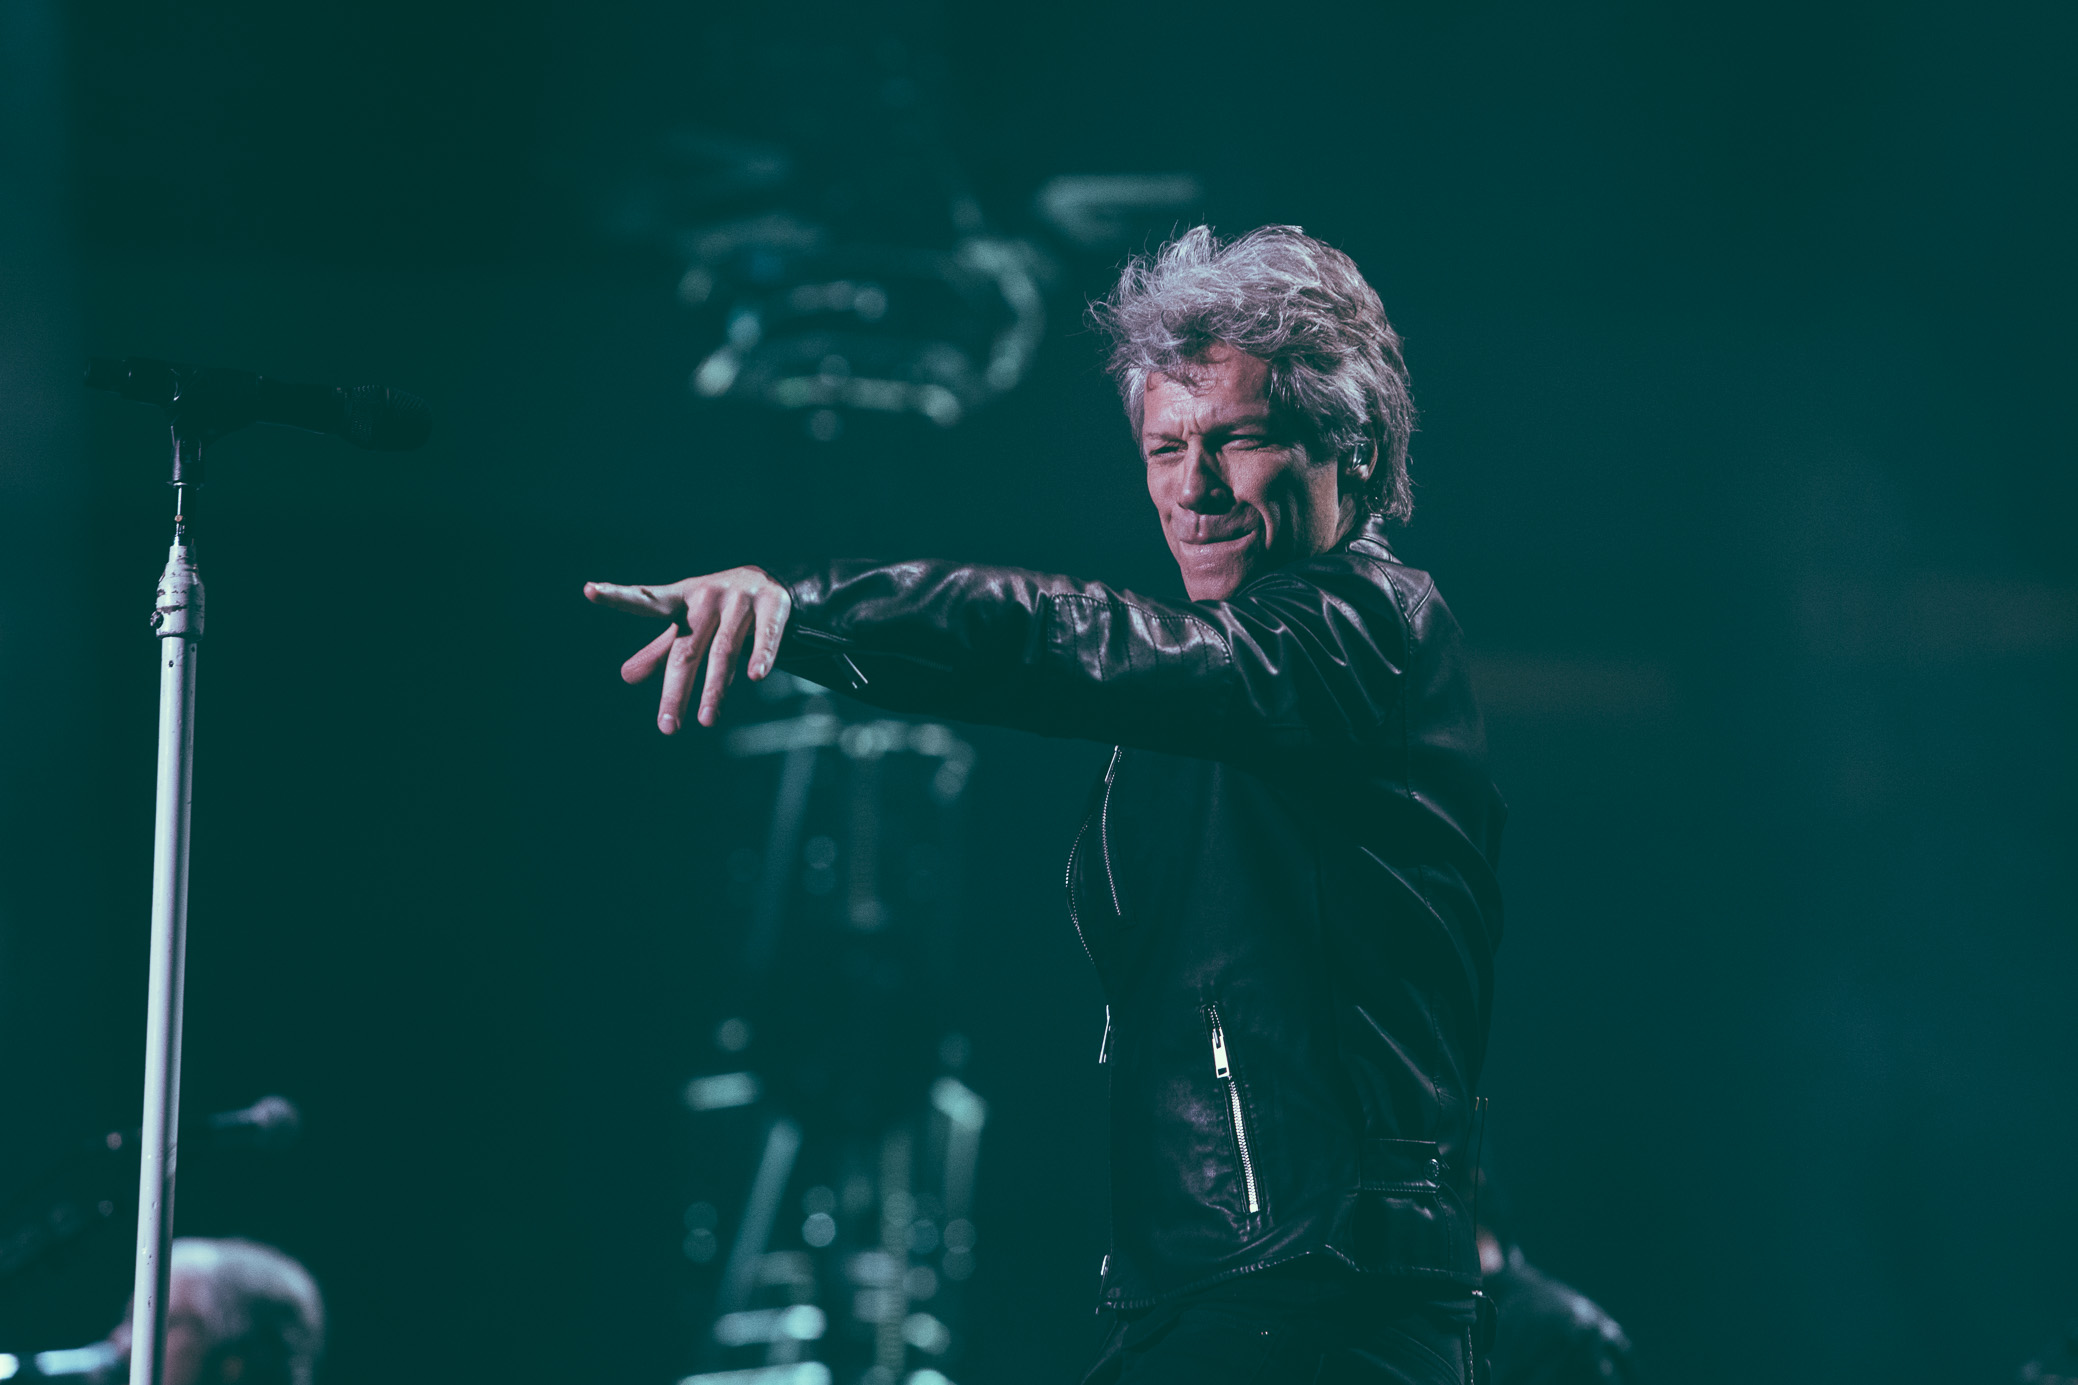 Bon Jovi performs at Legacy Arena at The BJCC in Birmingham, Alabama on February 16th, 2017. (Photo by David A. Smith/DSmithScenes)